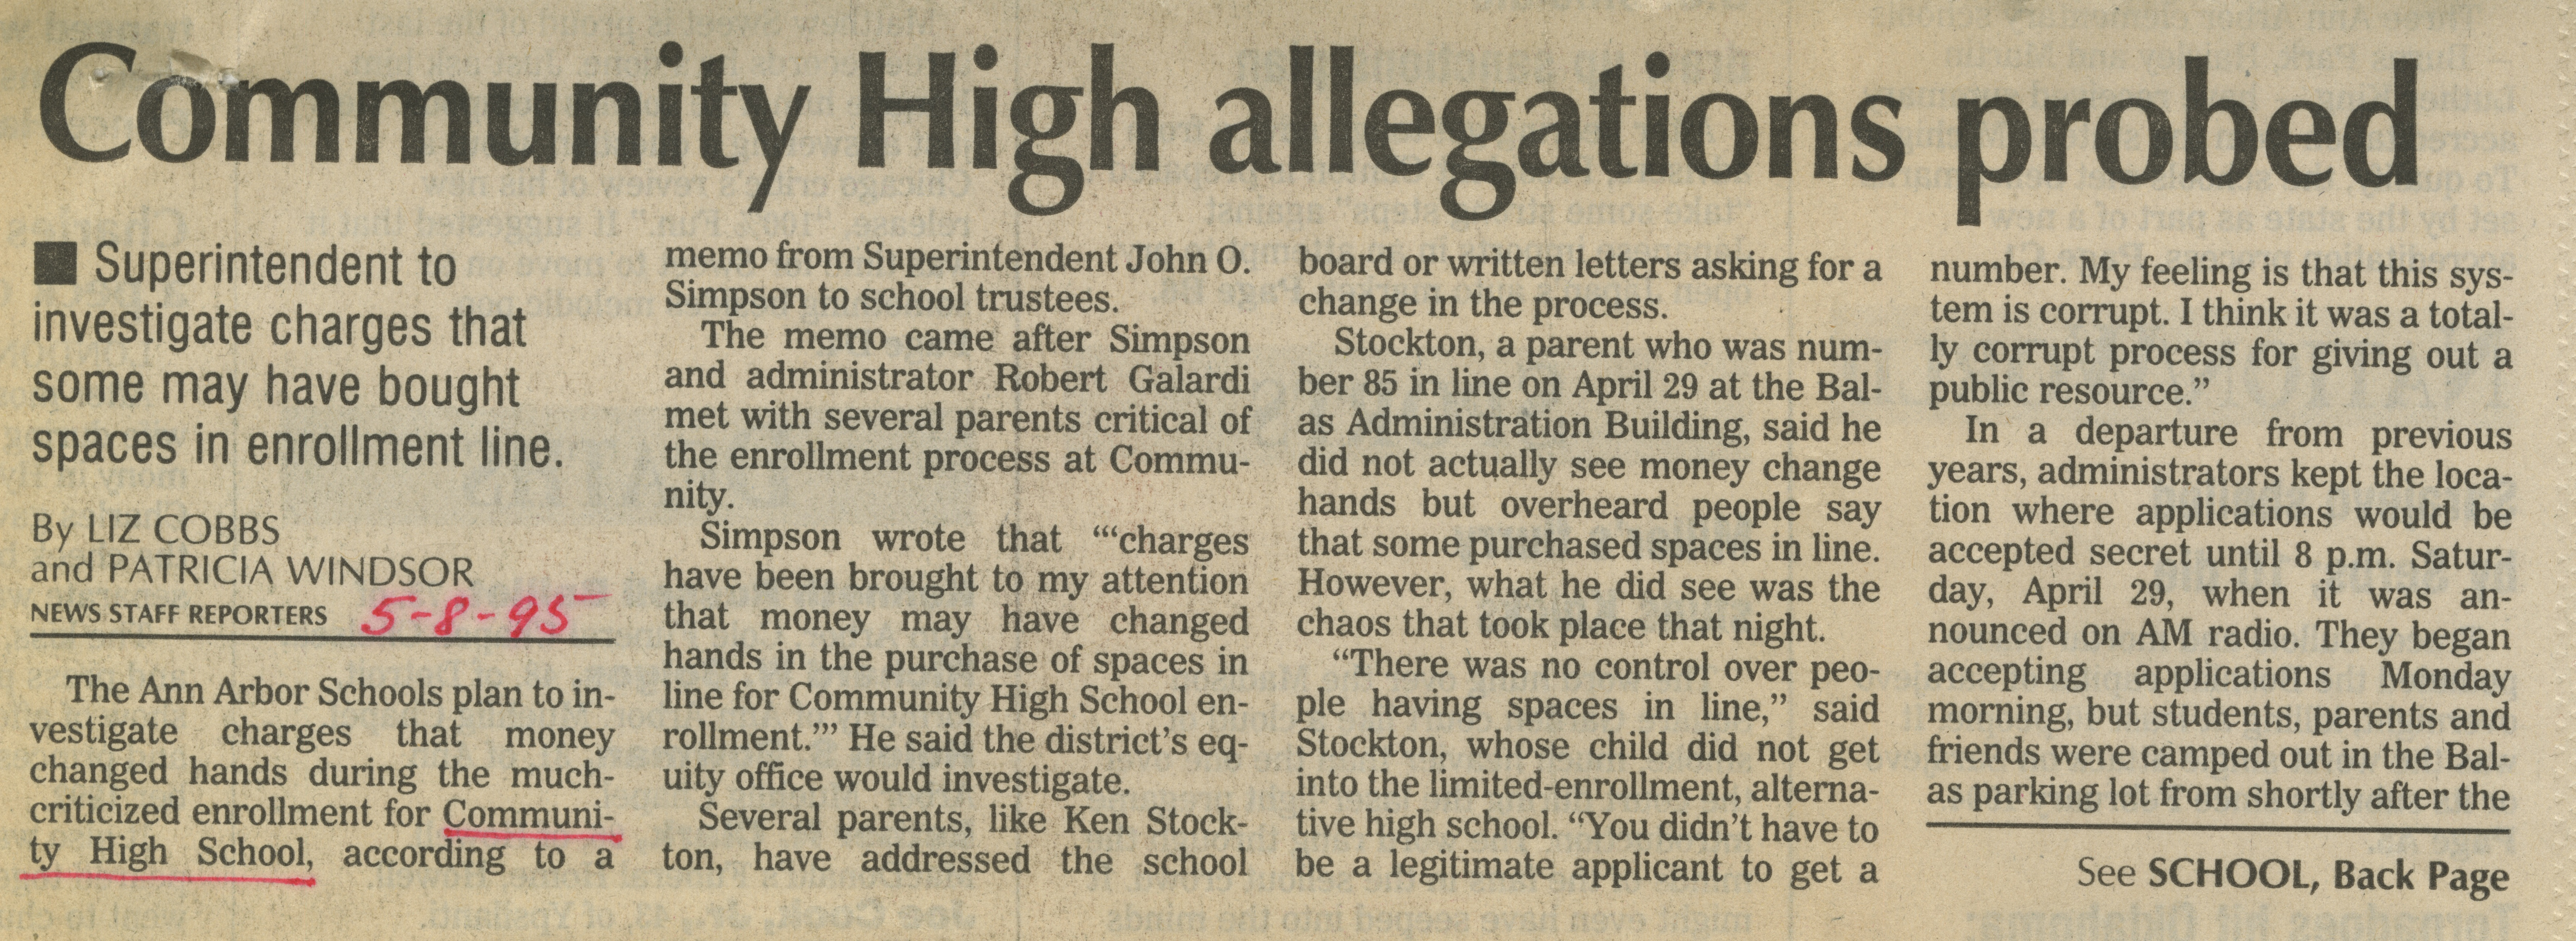 Community High allegations probed image